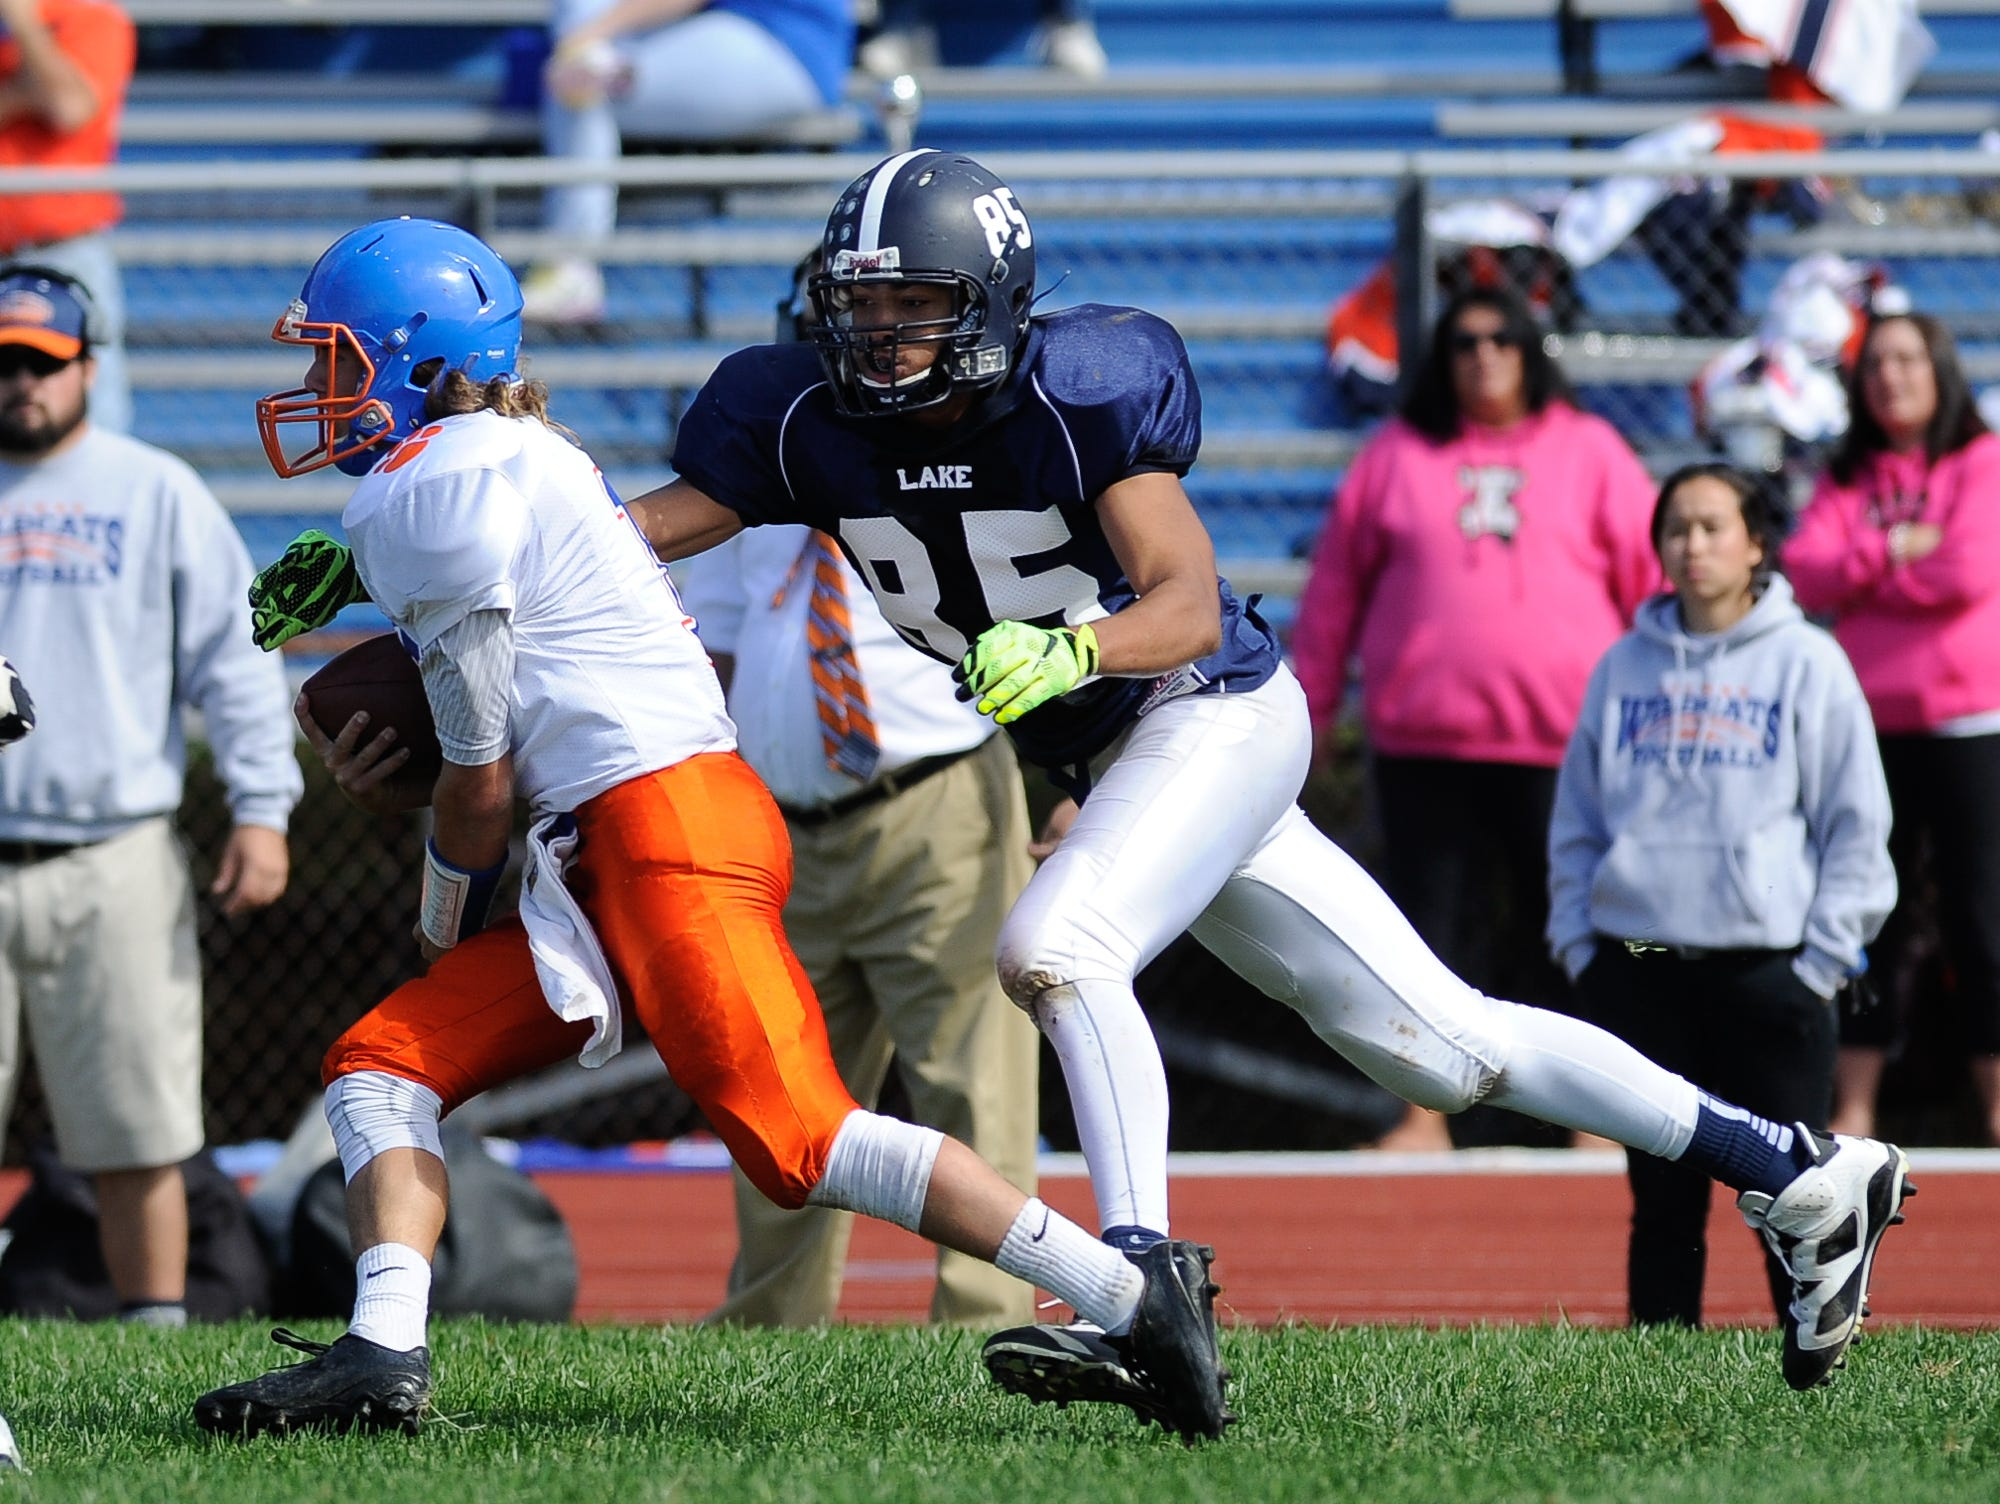 Lake Forest's #85 Cameron Lewis with a tackle on Delmar's quarterback #1 James Adkins in their 19-14 win over Delmar on Saturday at Lake Forest High School.